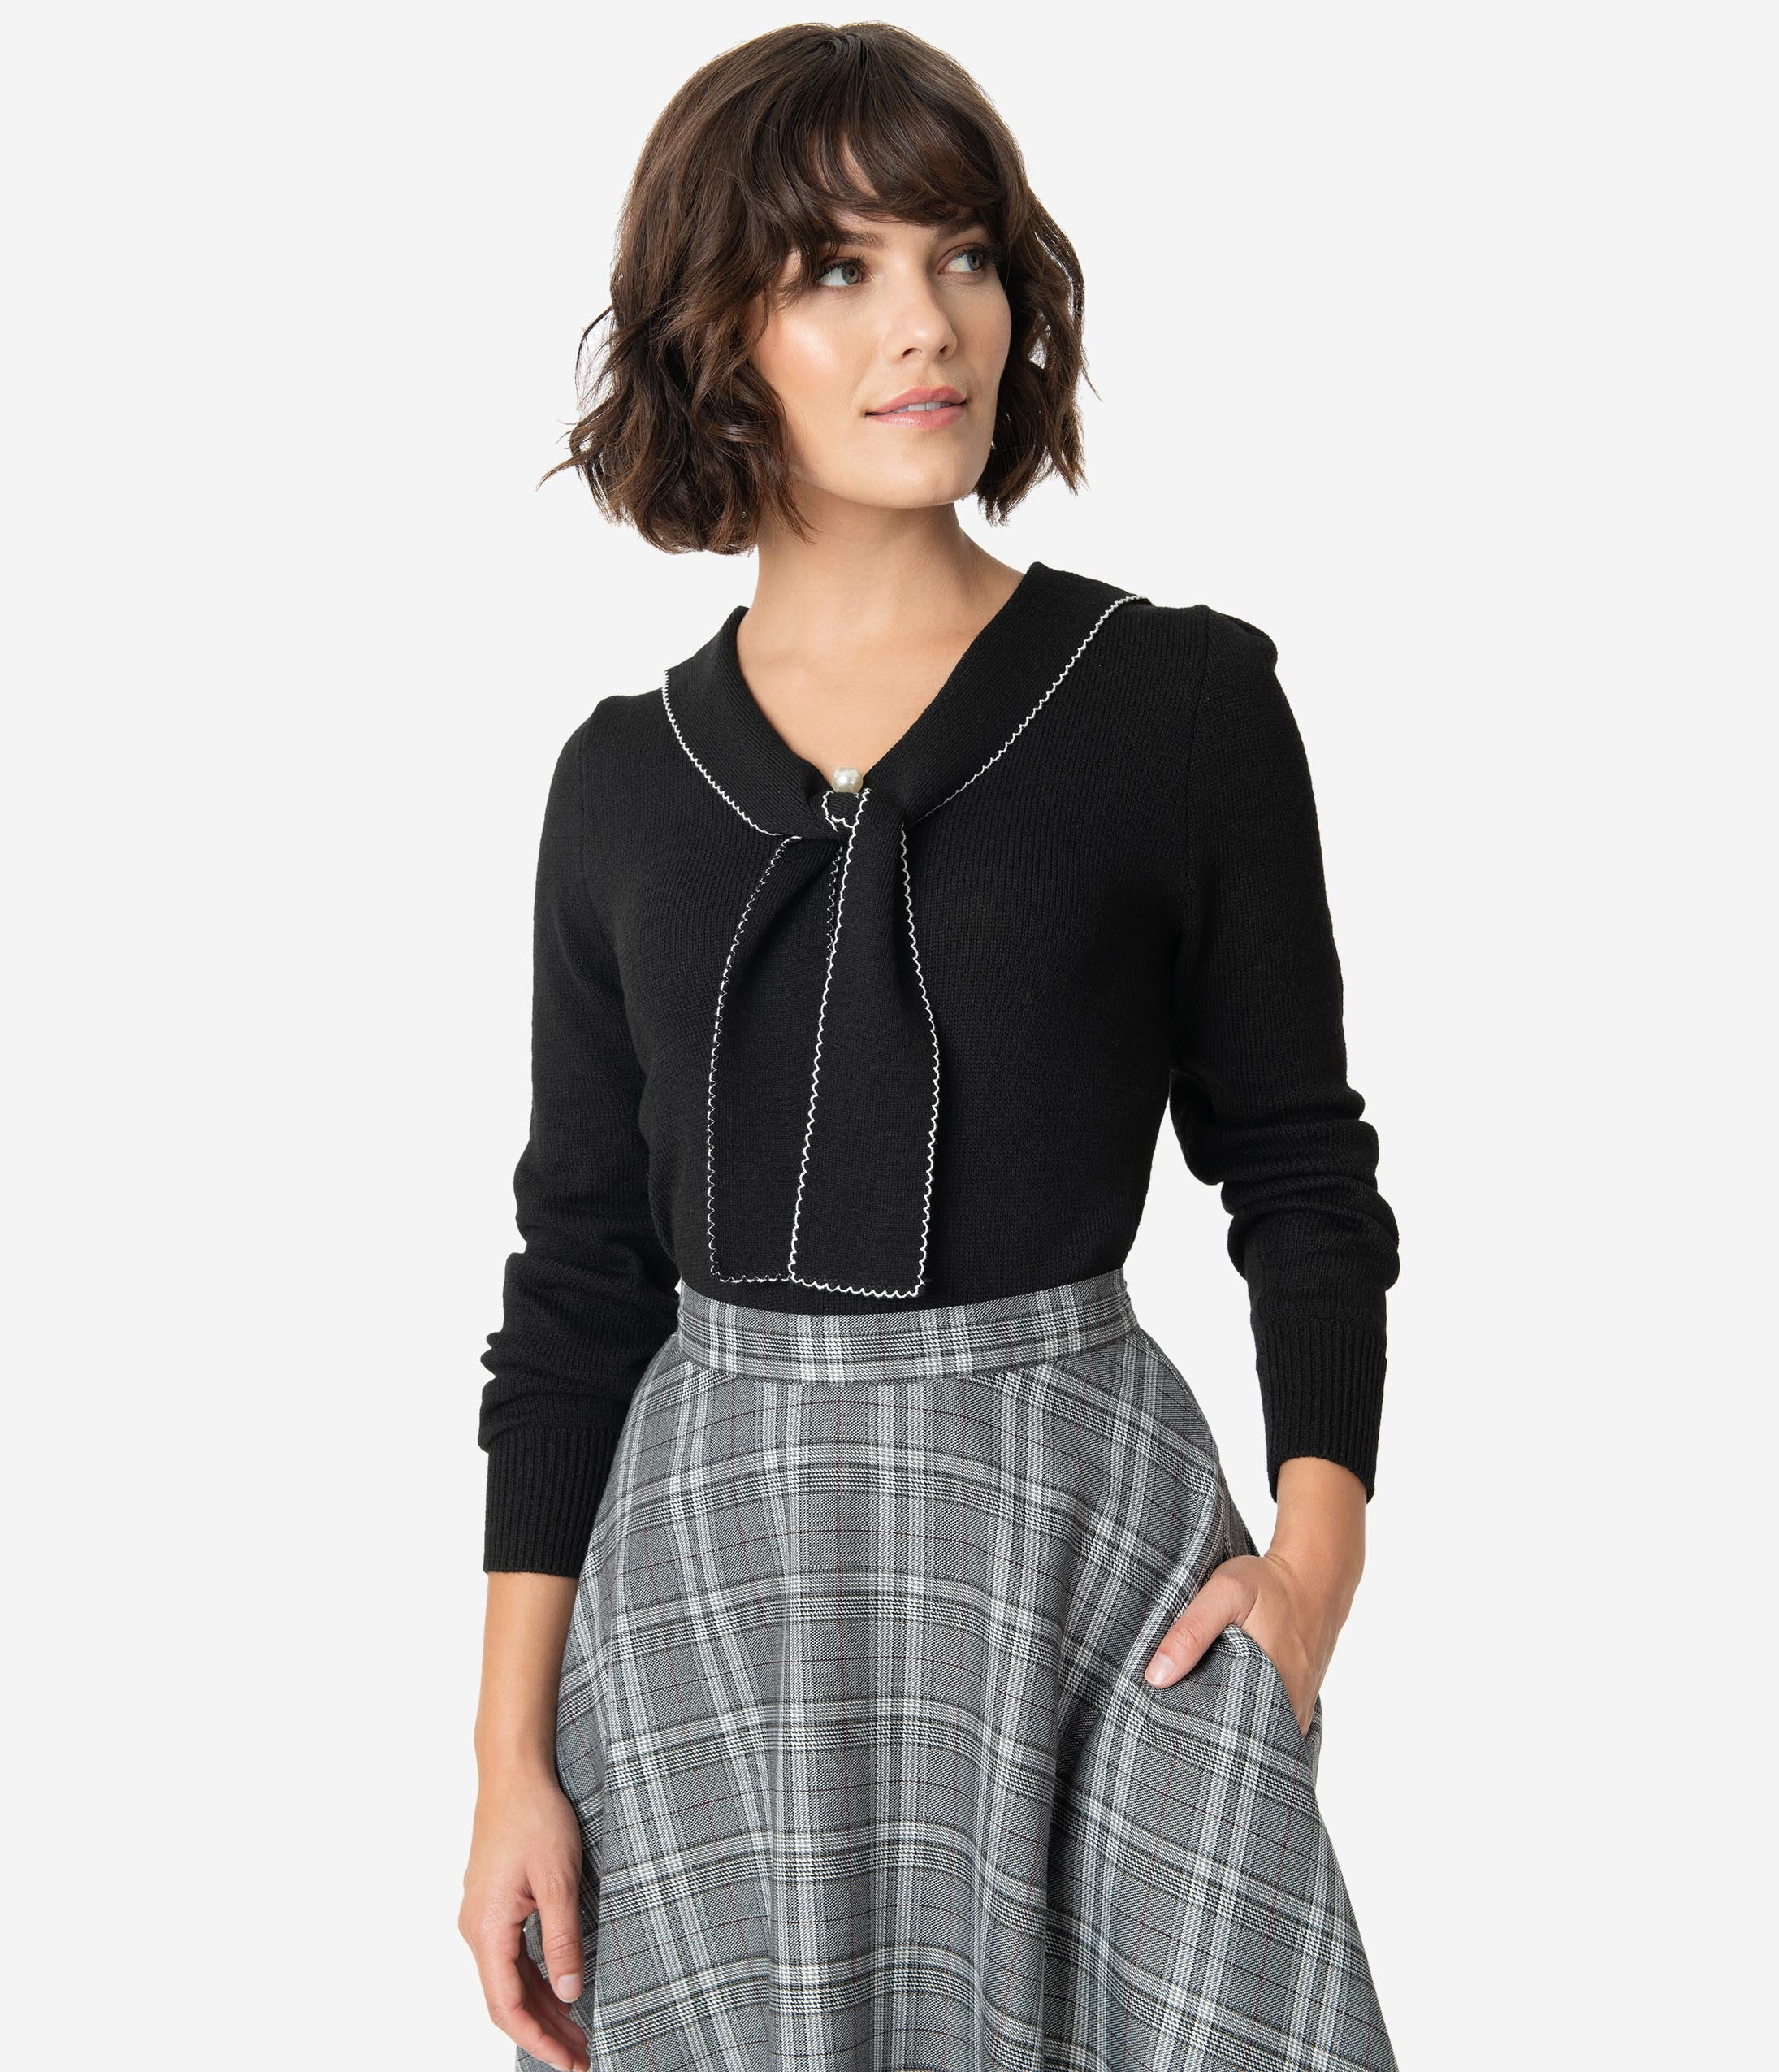 1920s Style Blouses, Shirts, Sweaters, Cardigans Hell Bunny Black Sailor Bow Connie Knit Sweater $62.00 AT vintagedancer.com